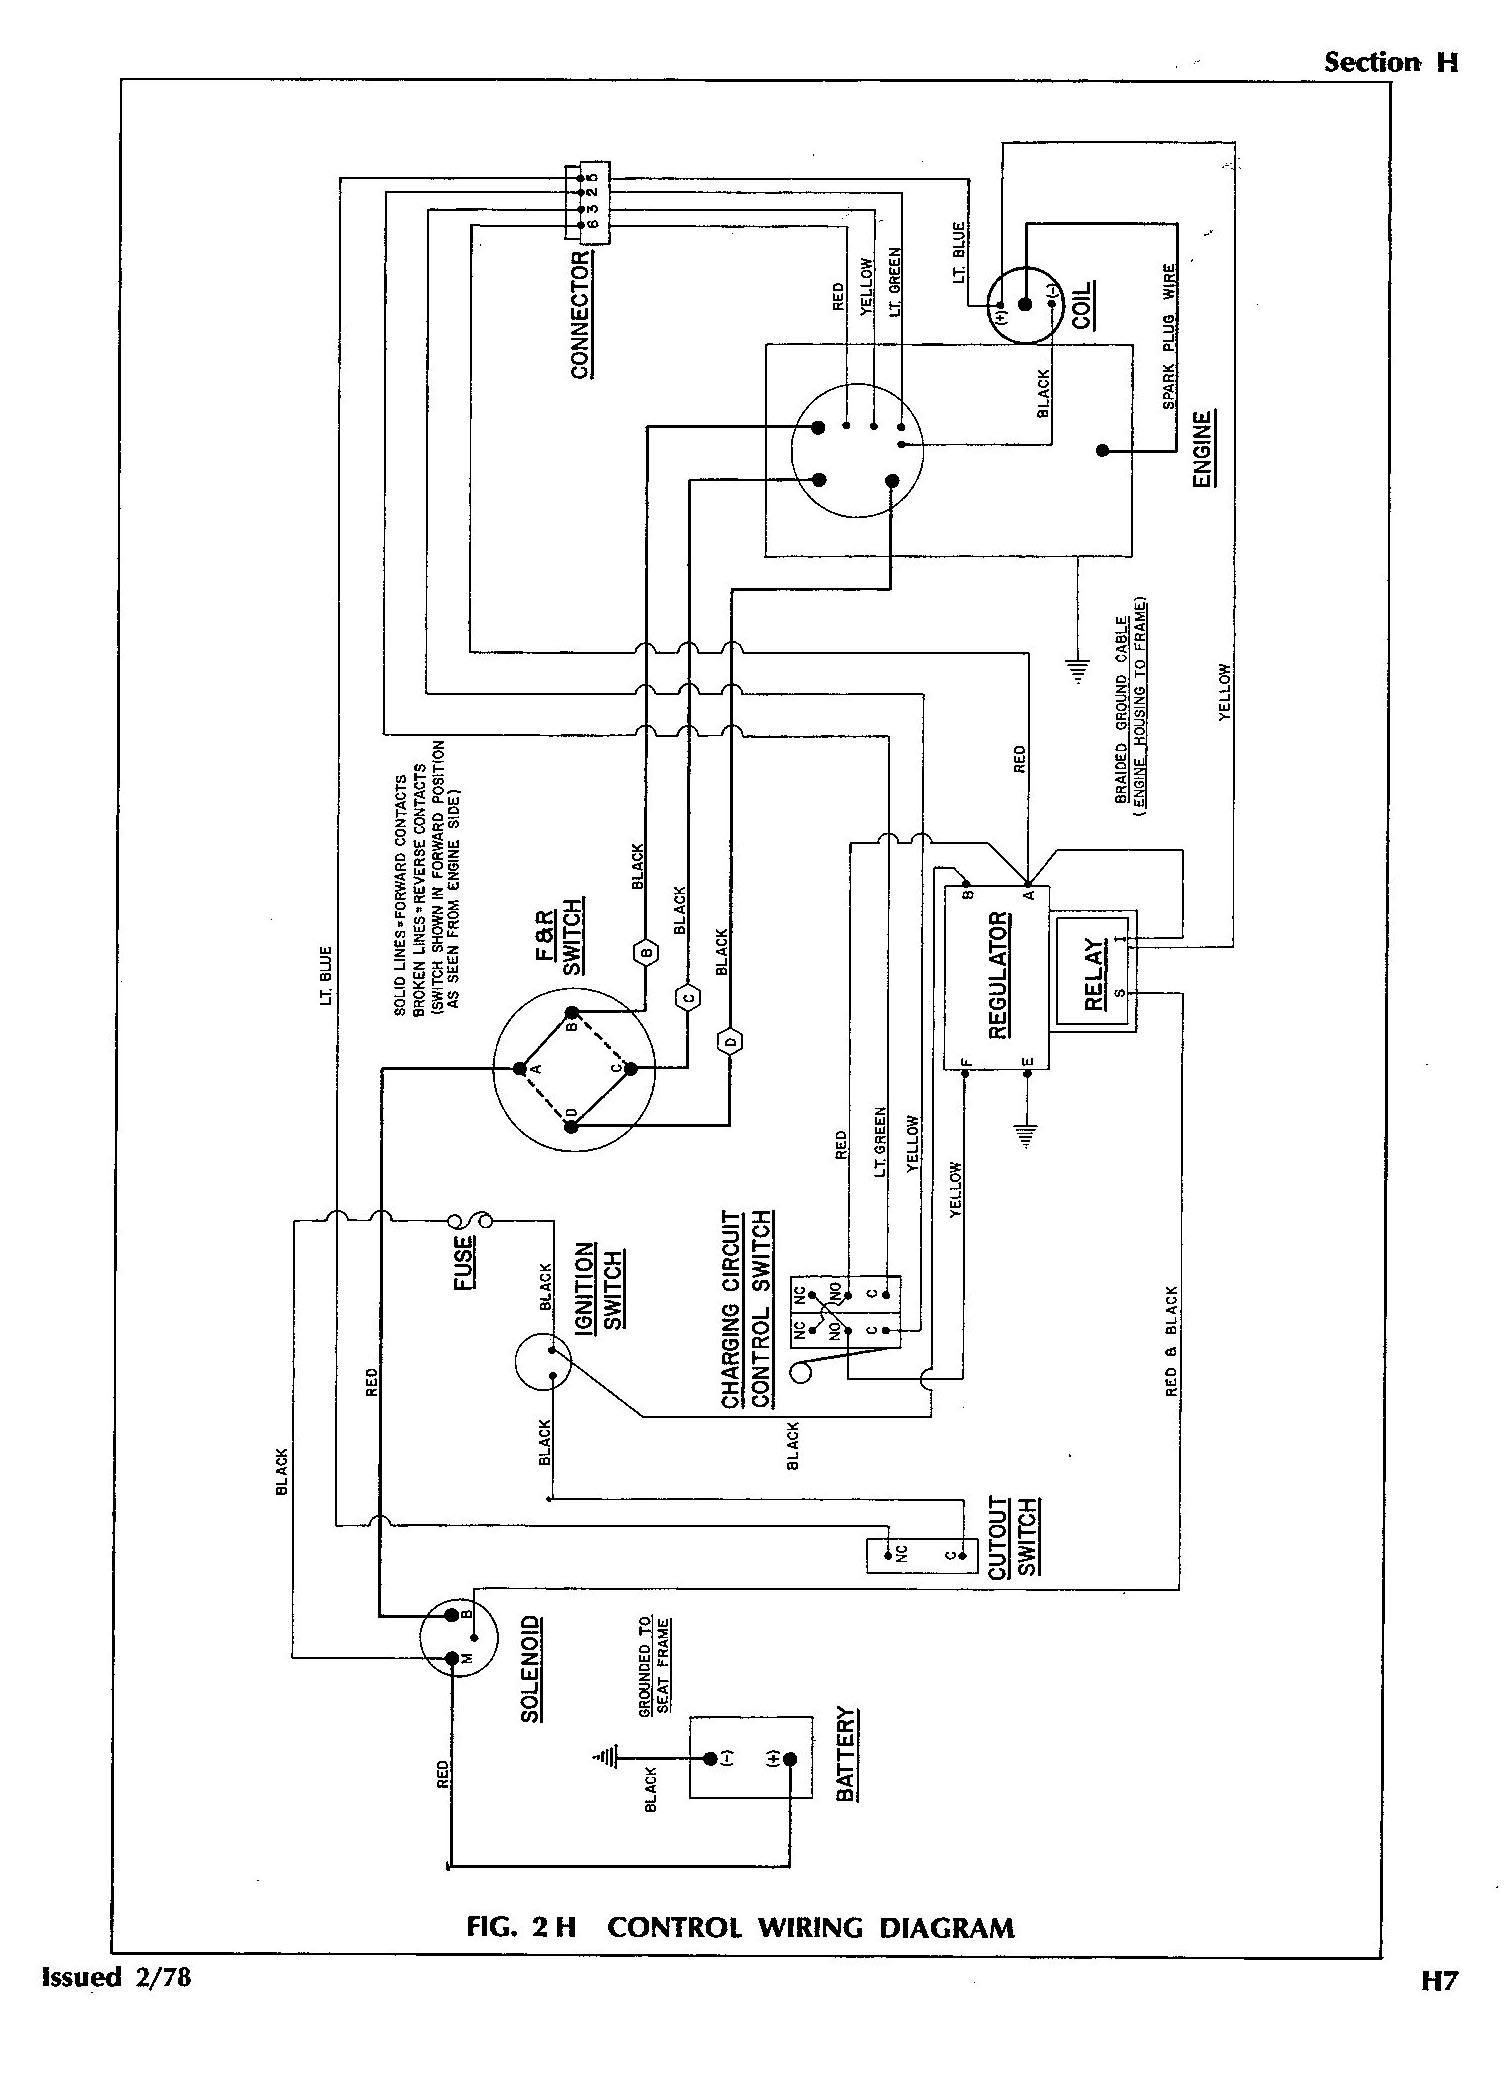 1991 Gas Club Car Schematic Diagram - Today Wiring Diagram - Club Car Wiring Diagram Gas